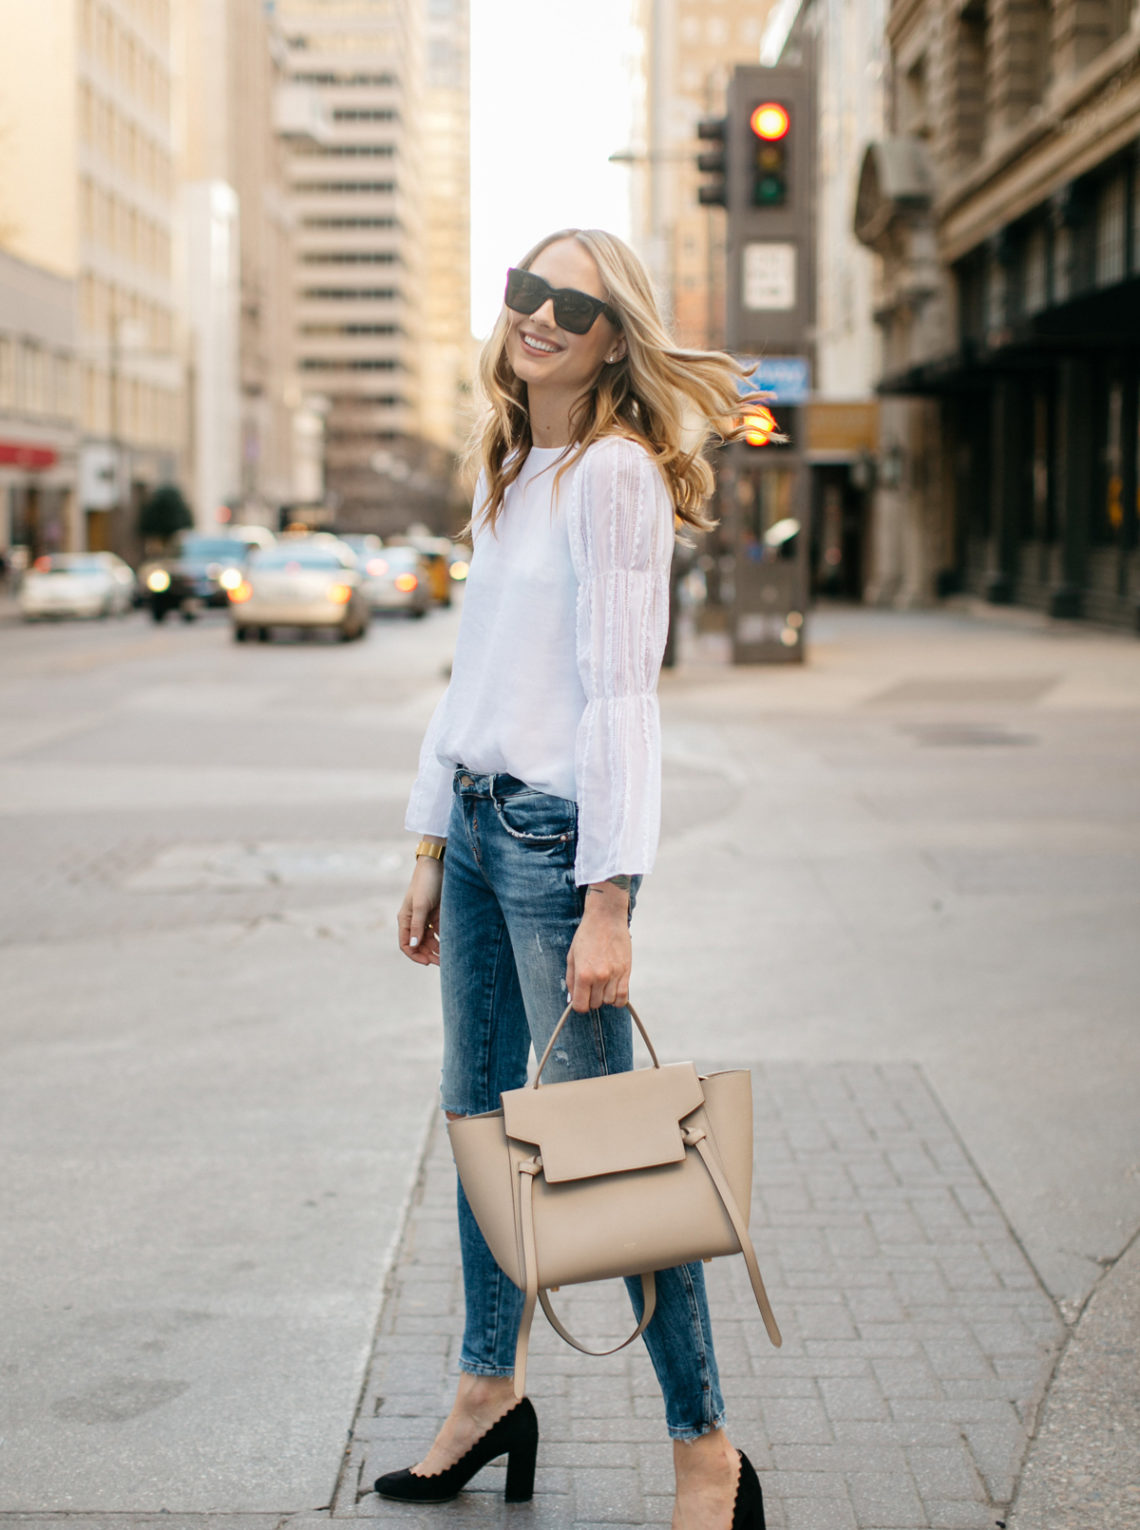 Spring Outfit, Club Monaco White Lace Top, Celine Belt Tie Handbag, Denim Ripped Skinny Jeans, Chloe Scallop Pumps